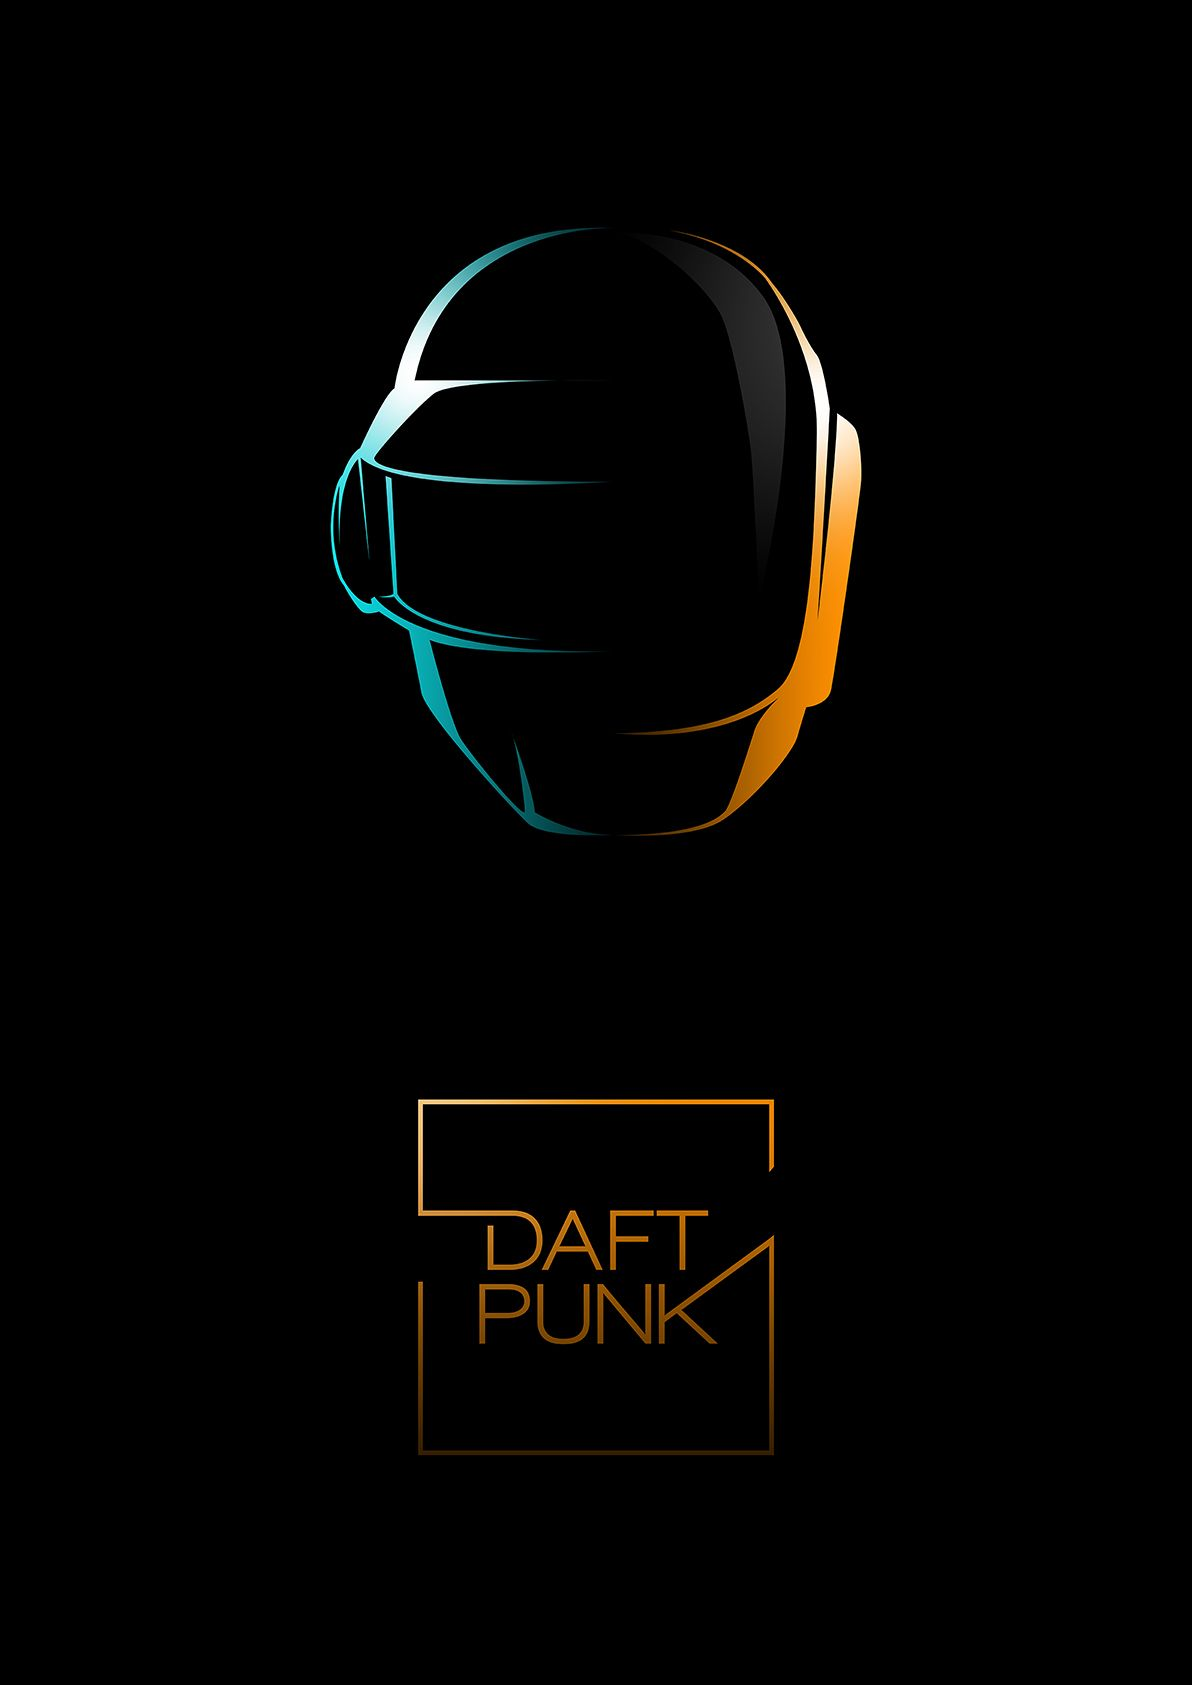 Daft Punk designers of tumblr: Photo | Fondos de pantalla ...